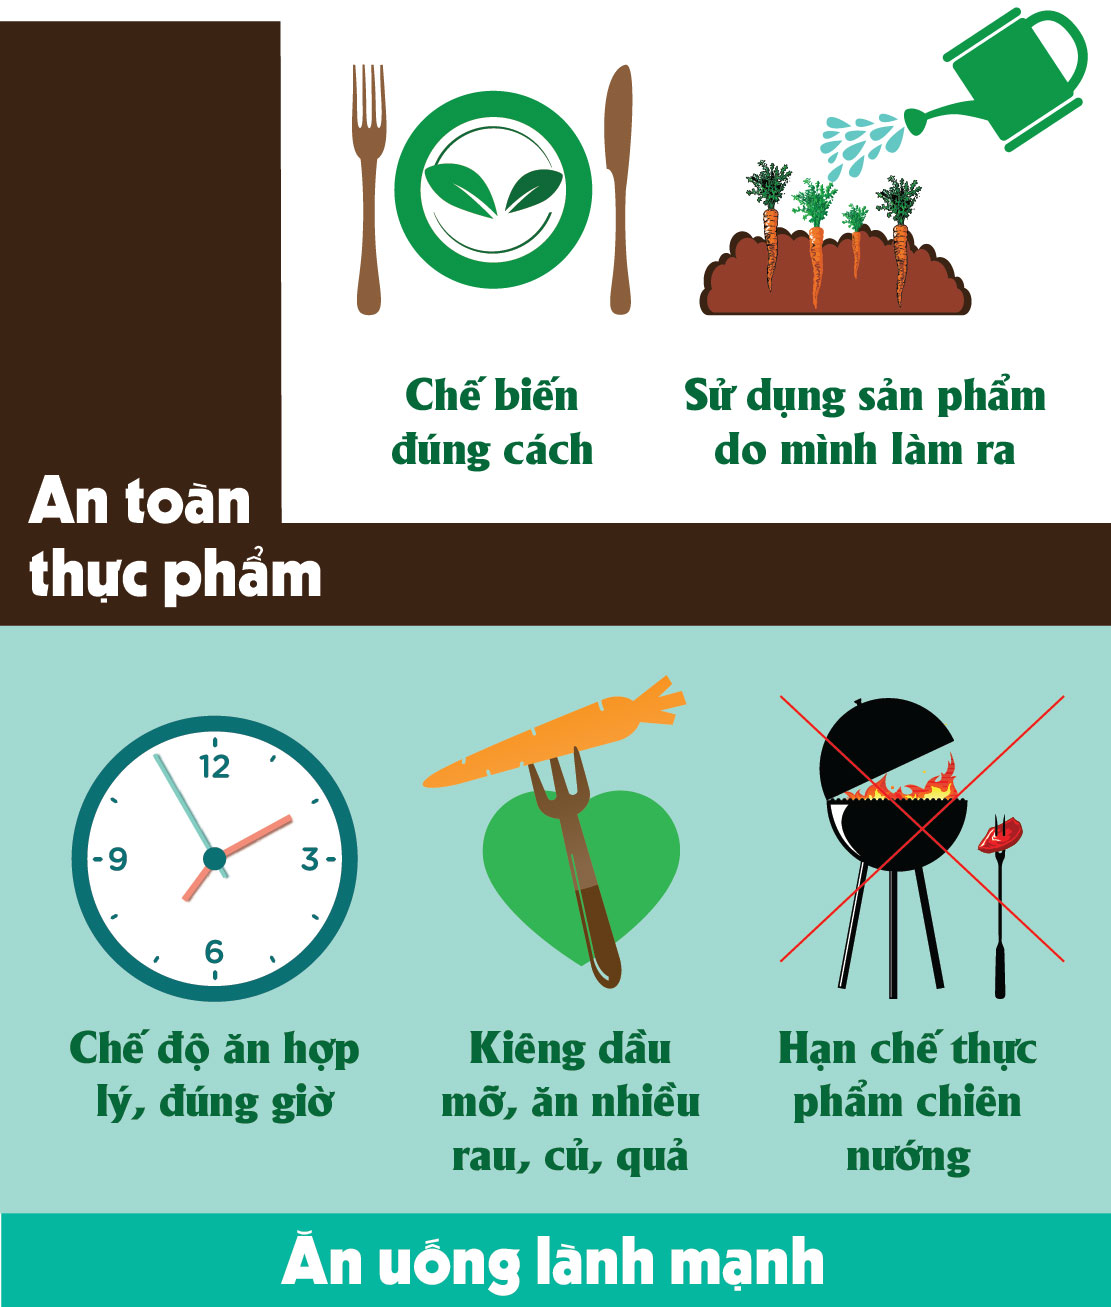 [infographic] bi quyet song khoe cua cu ba cao tuoi nhat the gioi hinh anh 3